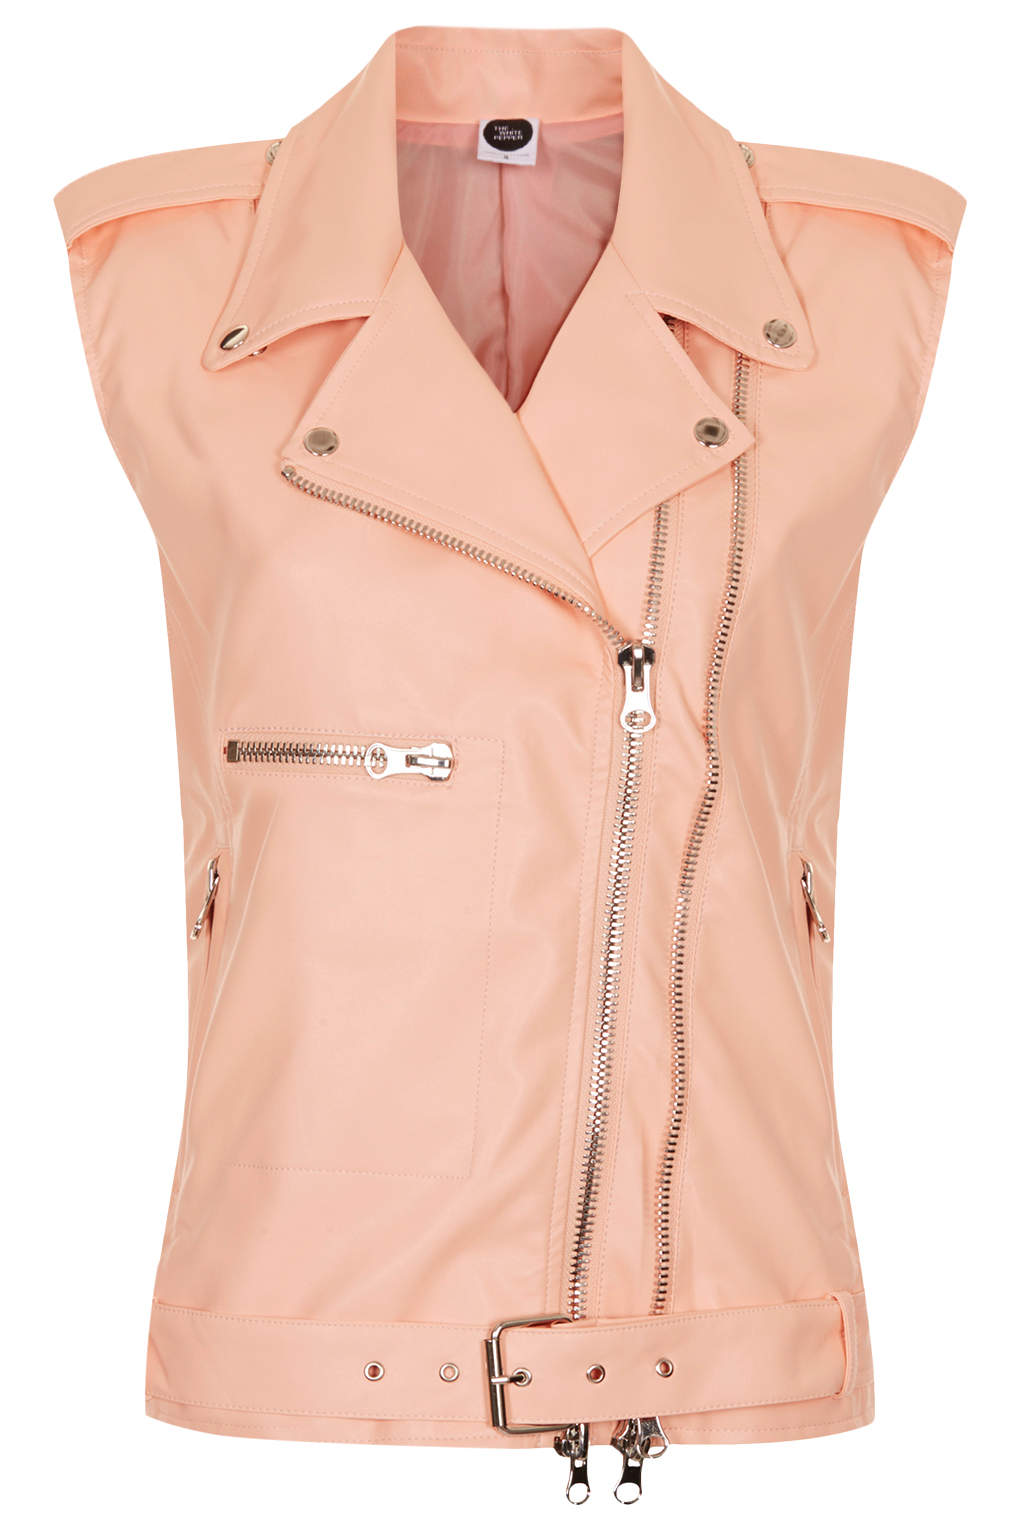 the-whitepepper-leather-biker-vest-orange-peach-apricot